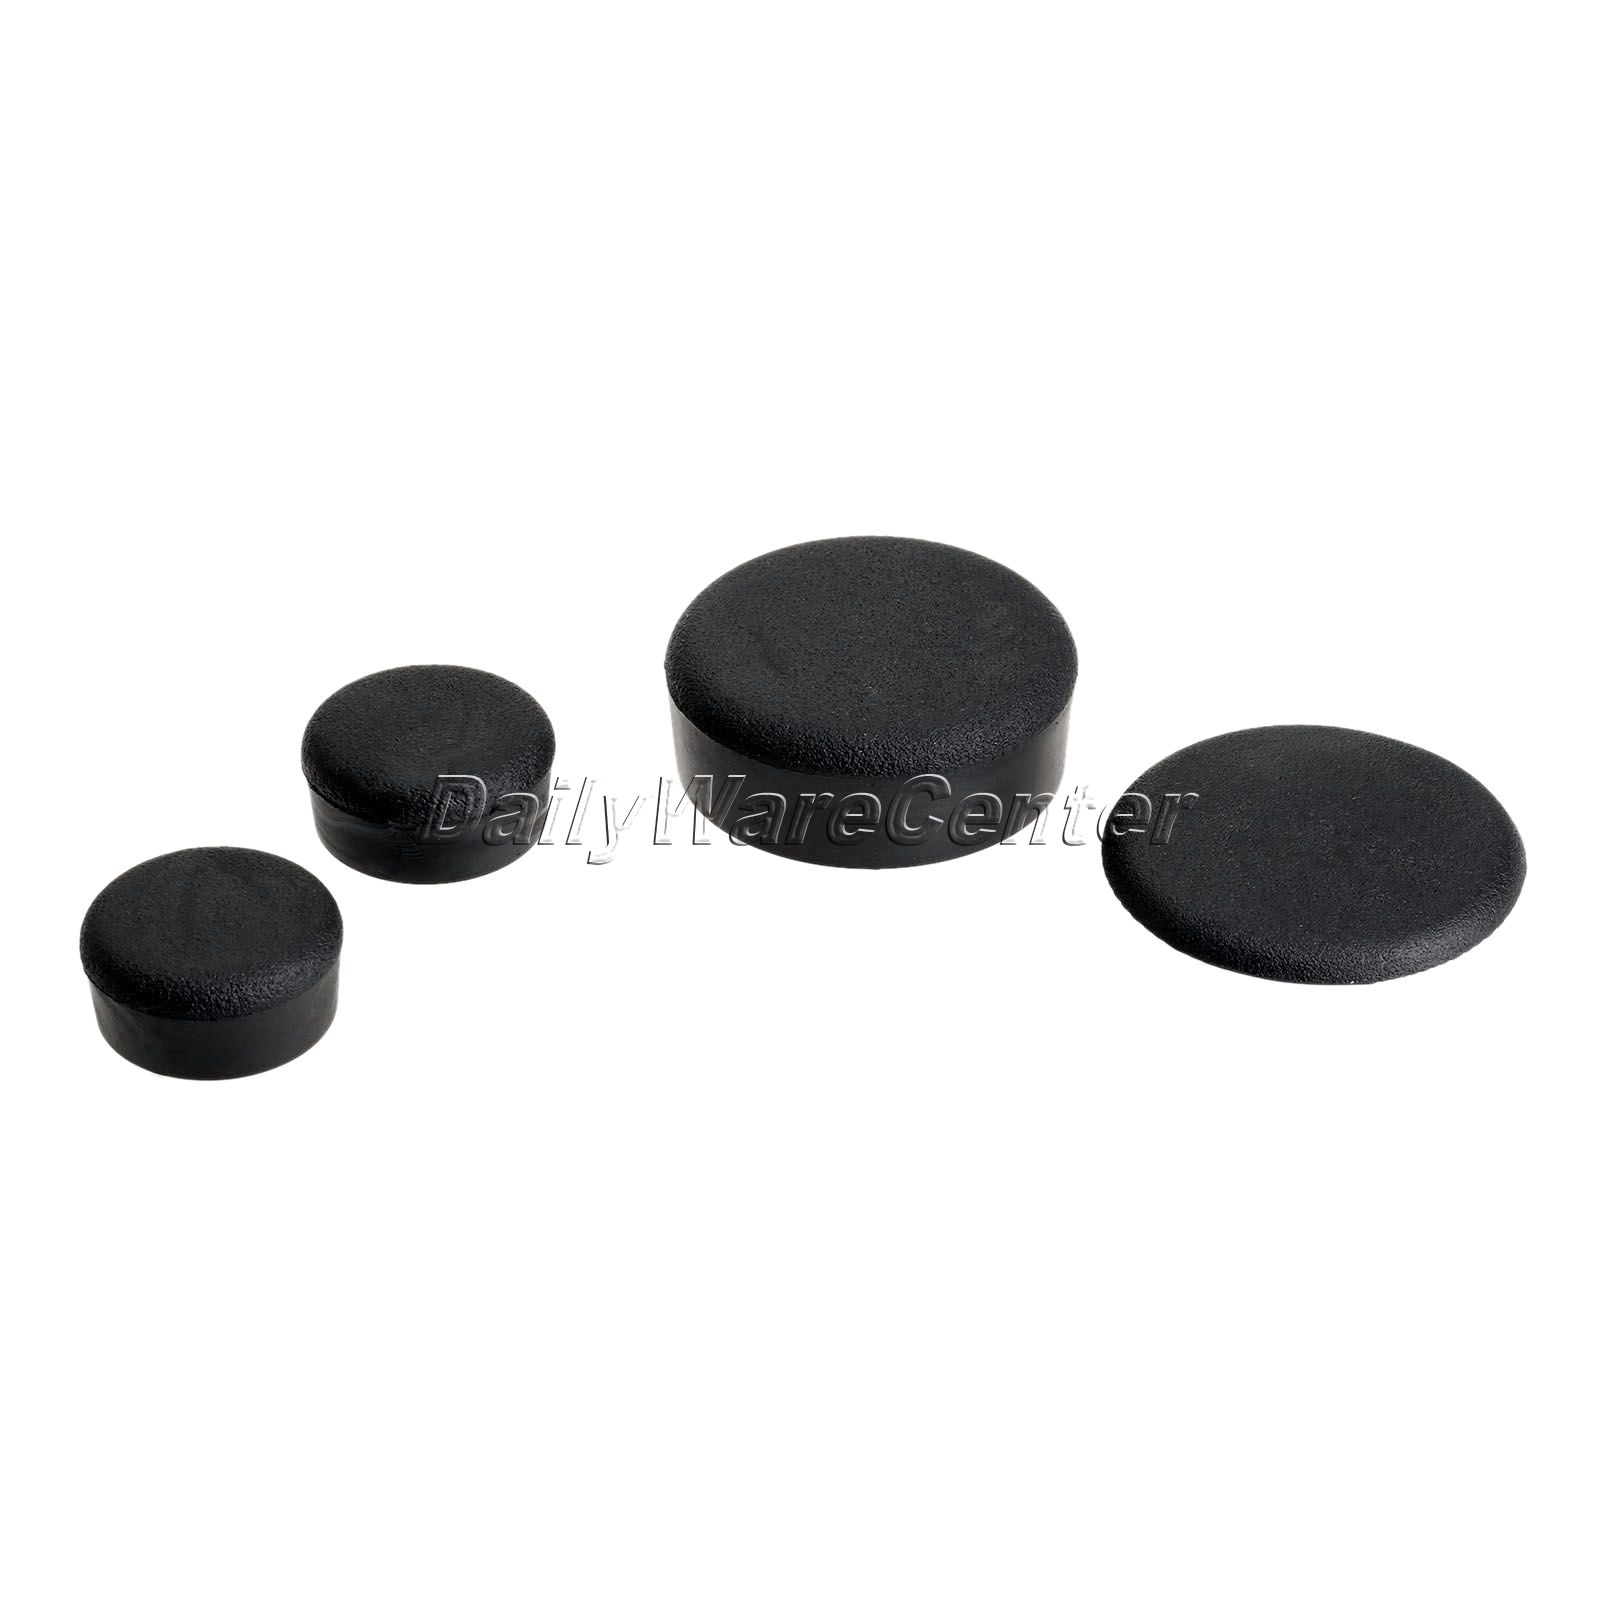 1set/4pcs Rubber Motorcycle Frame Fairings Plugs Black for Yamaha YZF R1 2004 2005 2006 Dirt Bike Frame Plugs Motorbike Parts parts leveling sensor photoelectric nds 40 black plugs